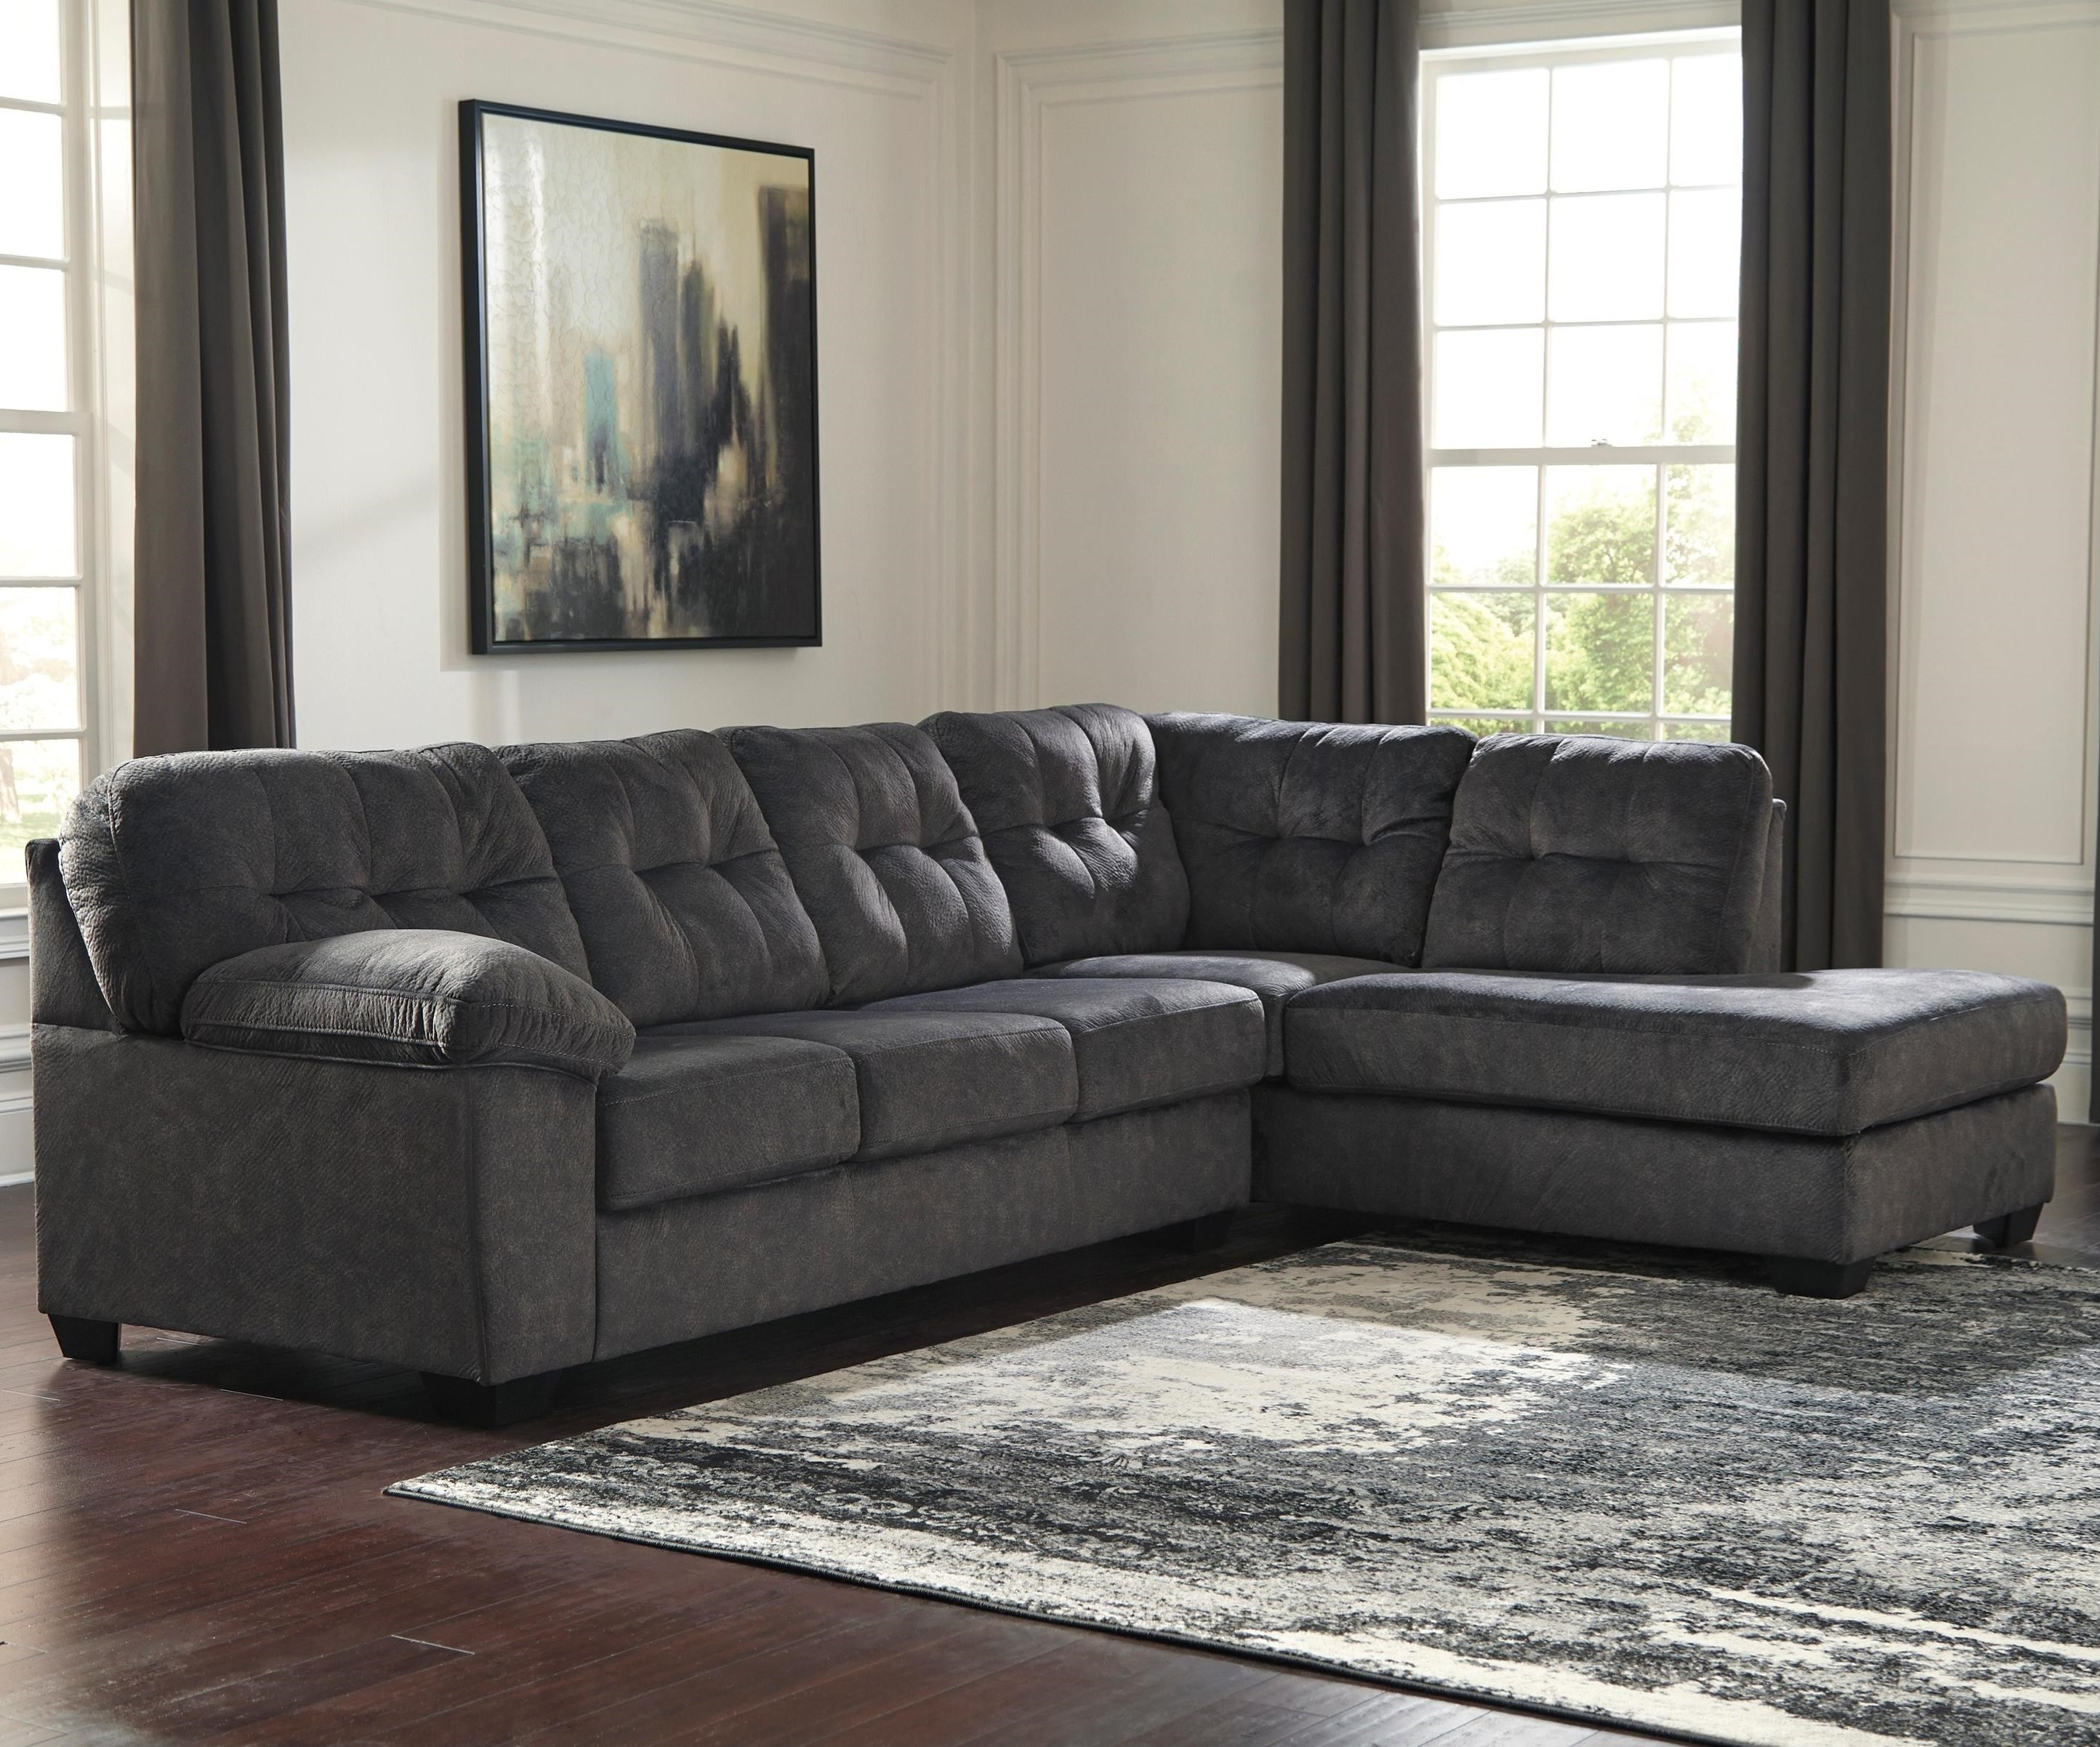 Accrington Sectional with Right Chaise at Sadler's Home Furnishings